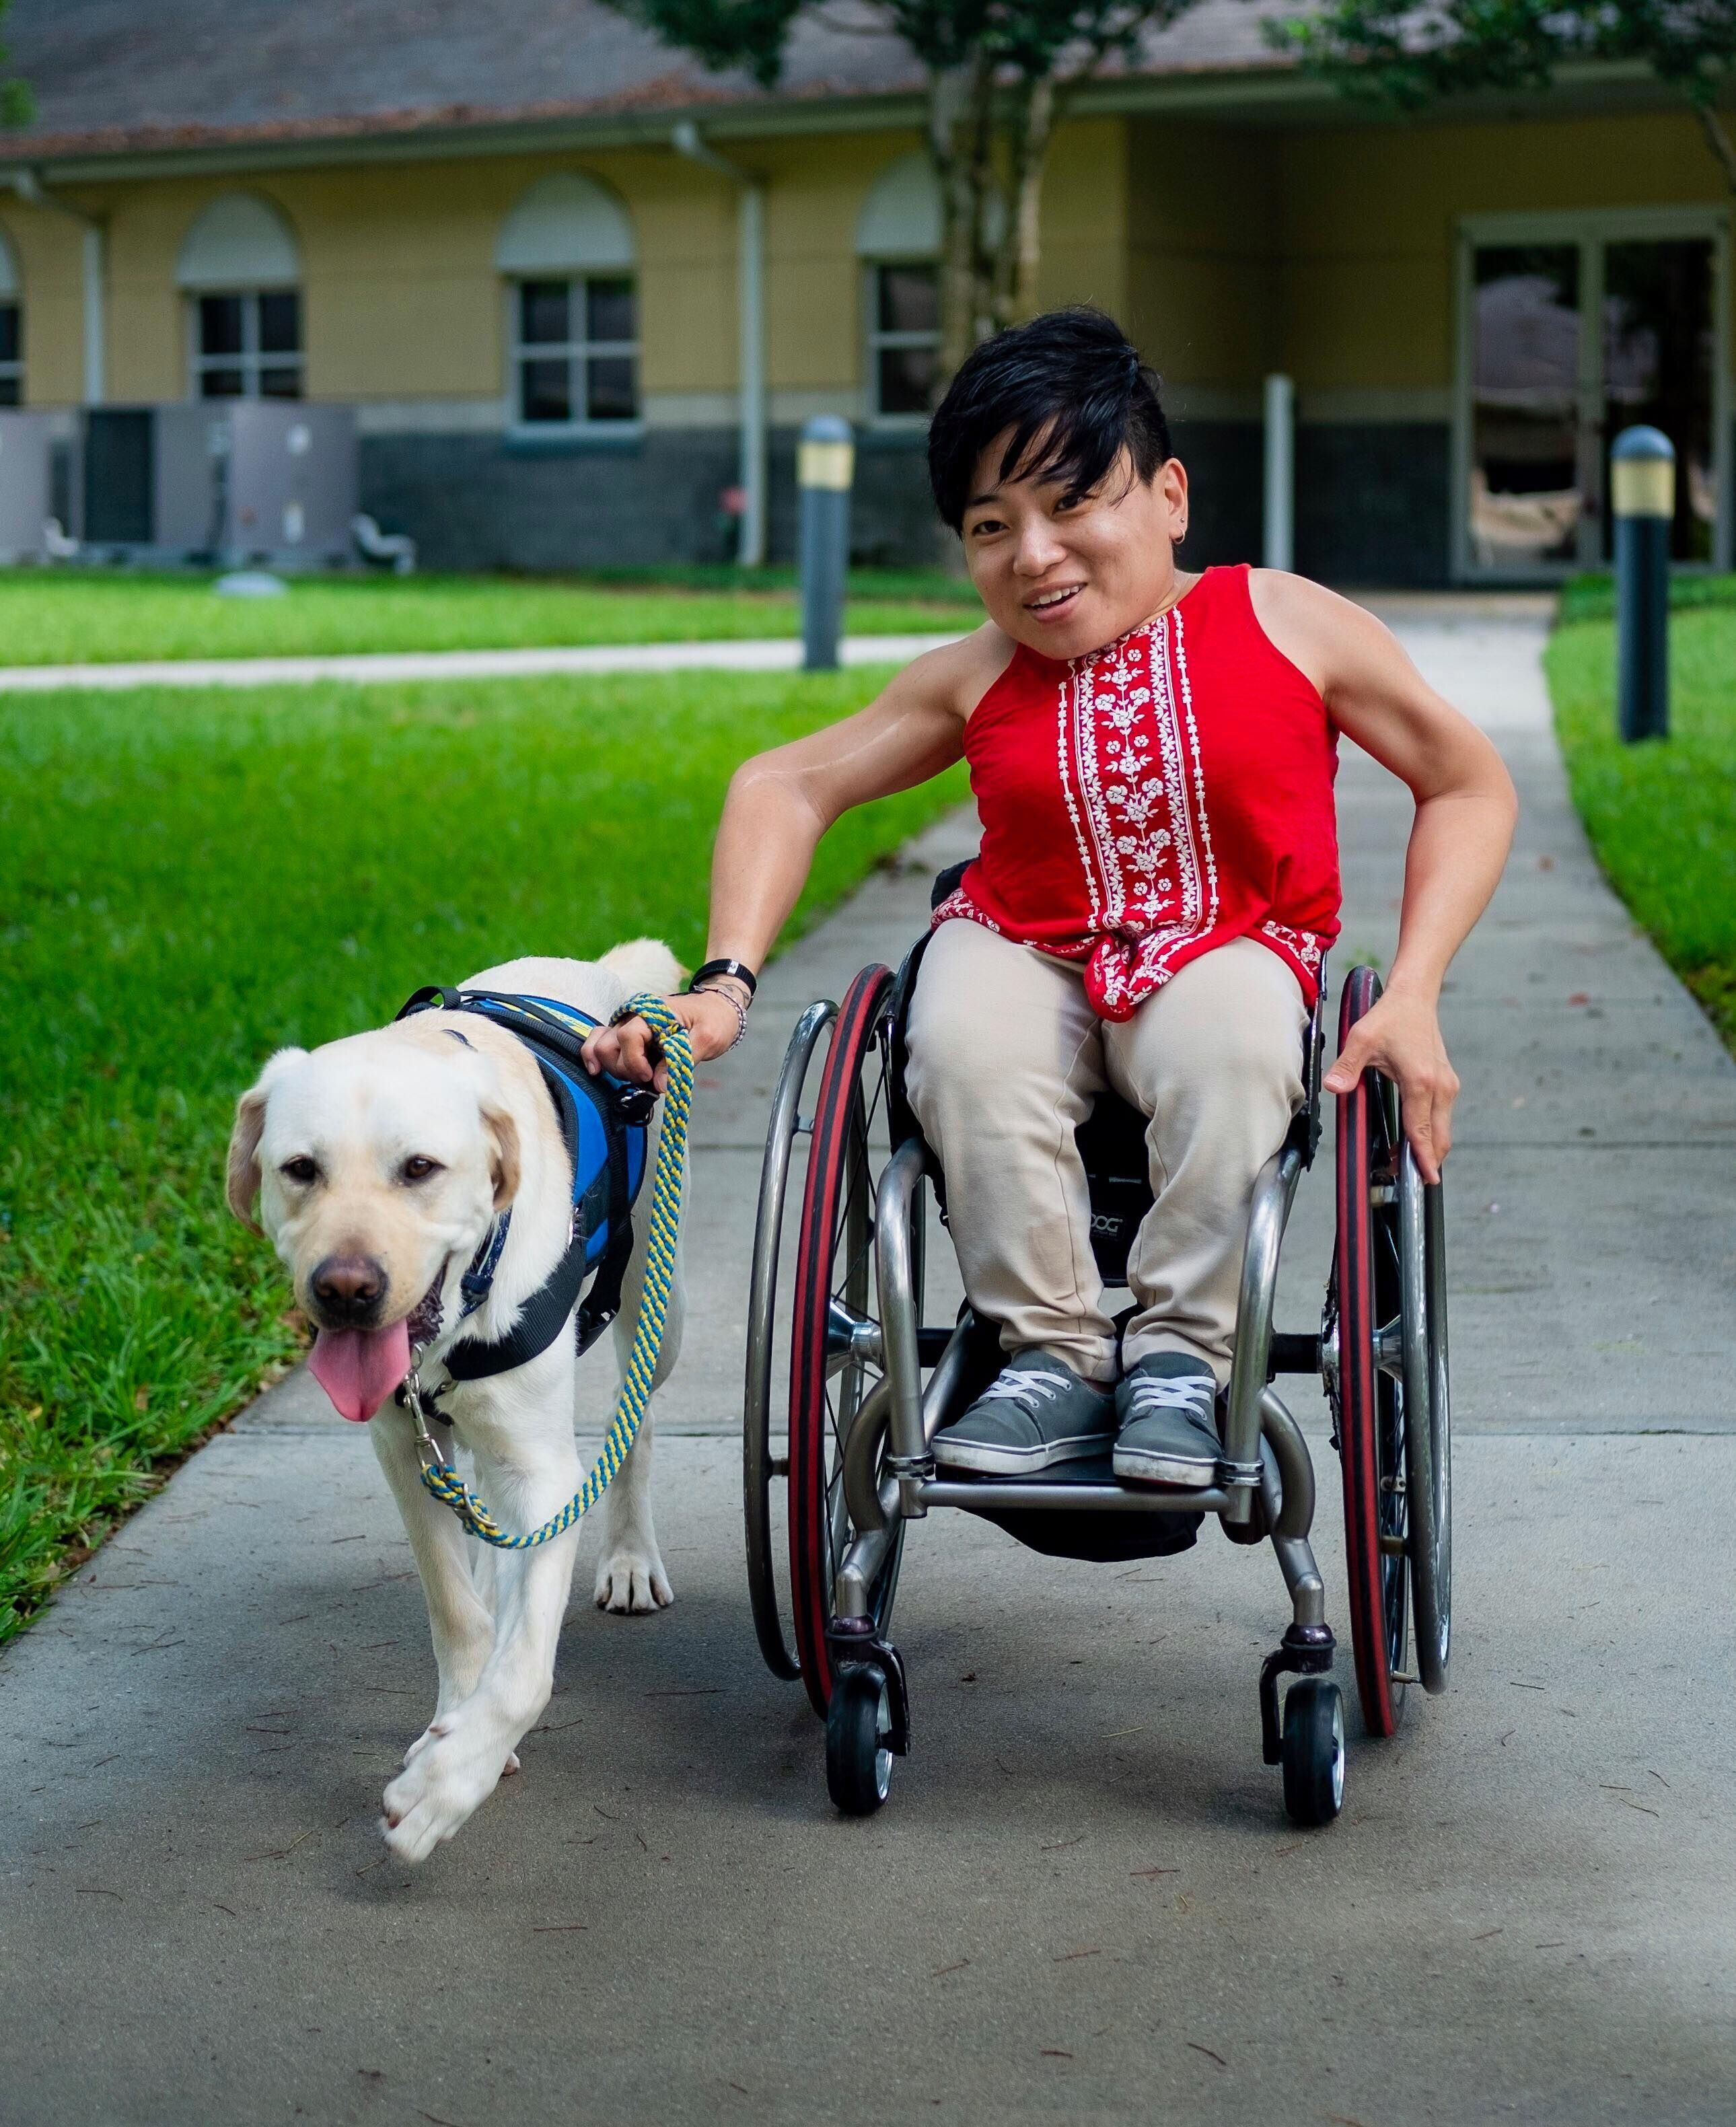 Mia Ives-Rublee is wearing a red tank top and sitting in a wheelchair, with her service dog walking next to her.